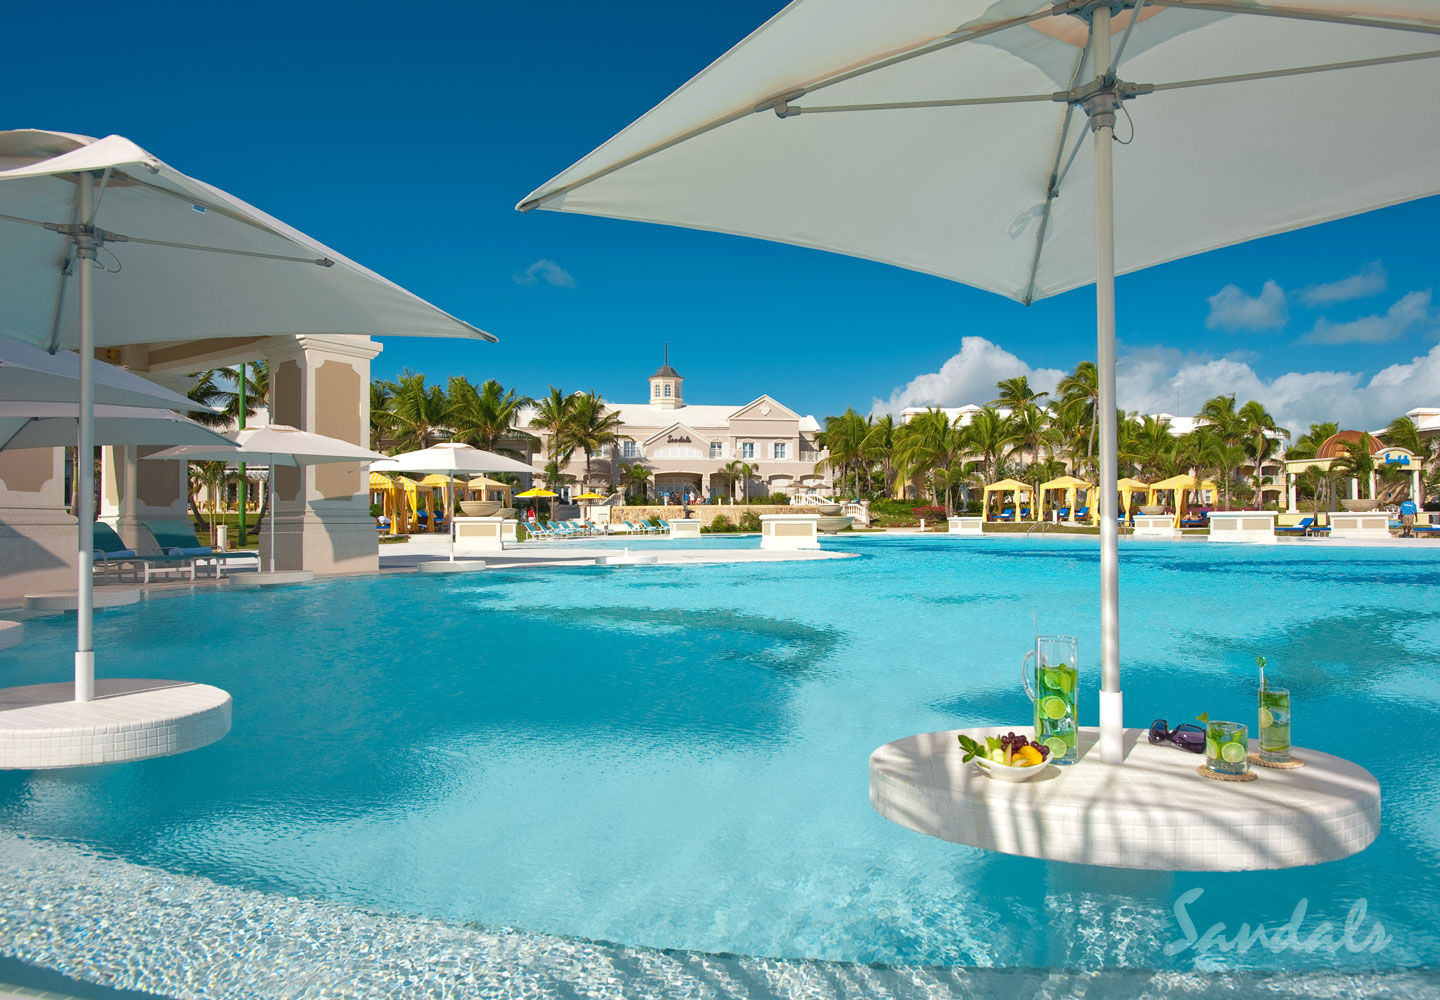 Travel Agency All-Inclusive Resort Sandals Emerald Bay 071